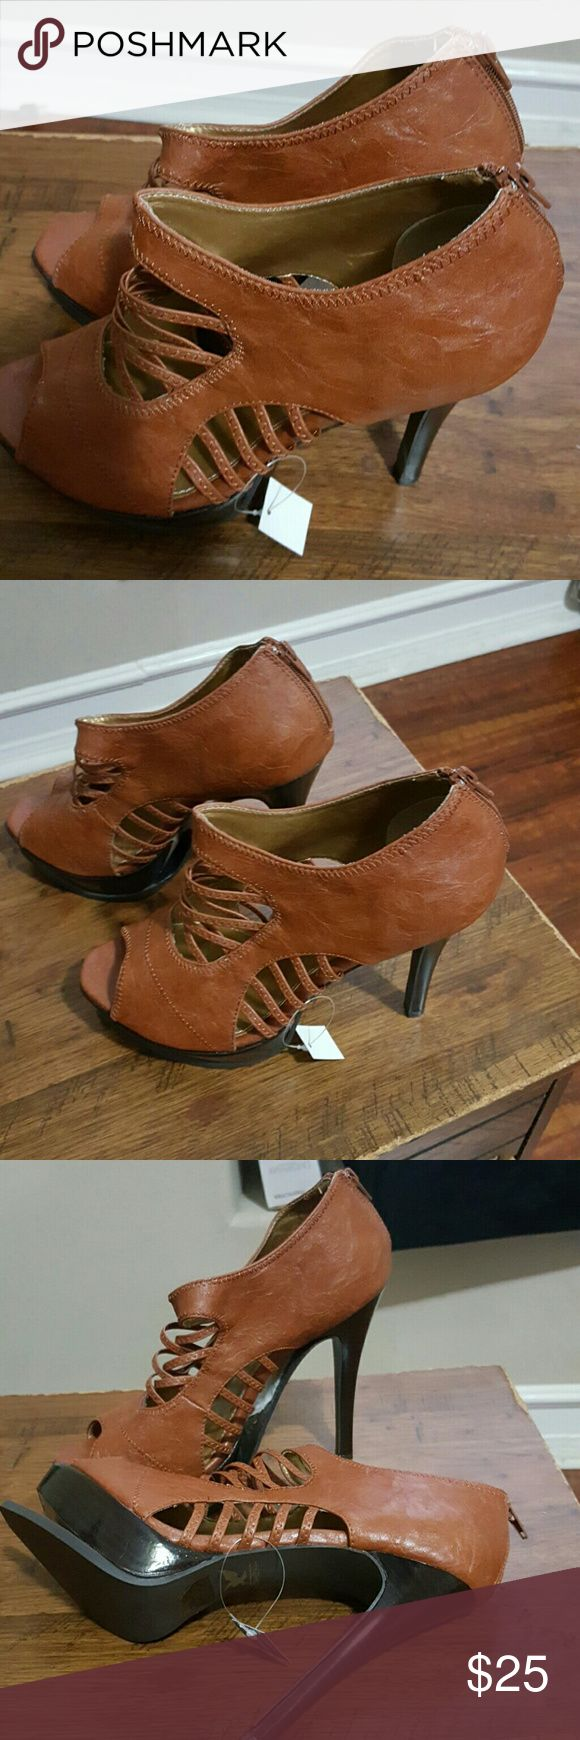 Lovely brown high hill shoes Brown leather, no ware and tare.... Shoes Heels